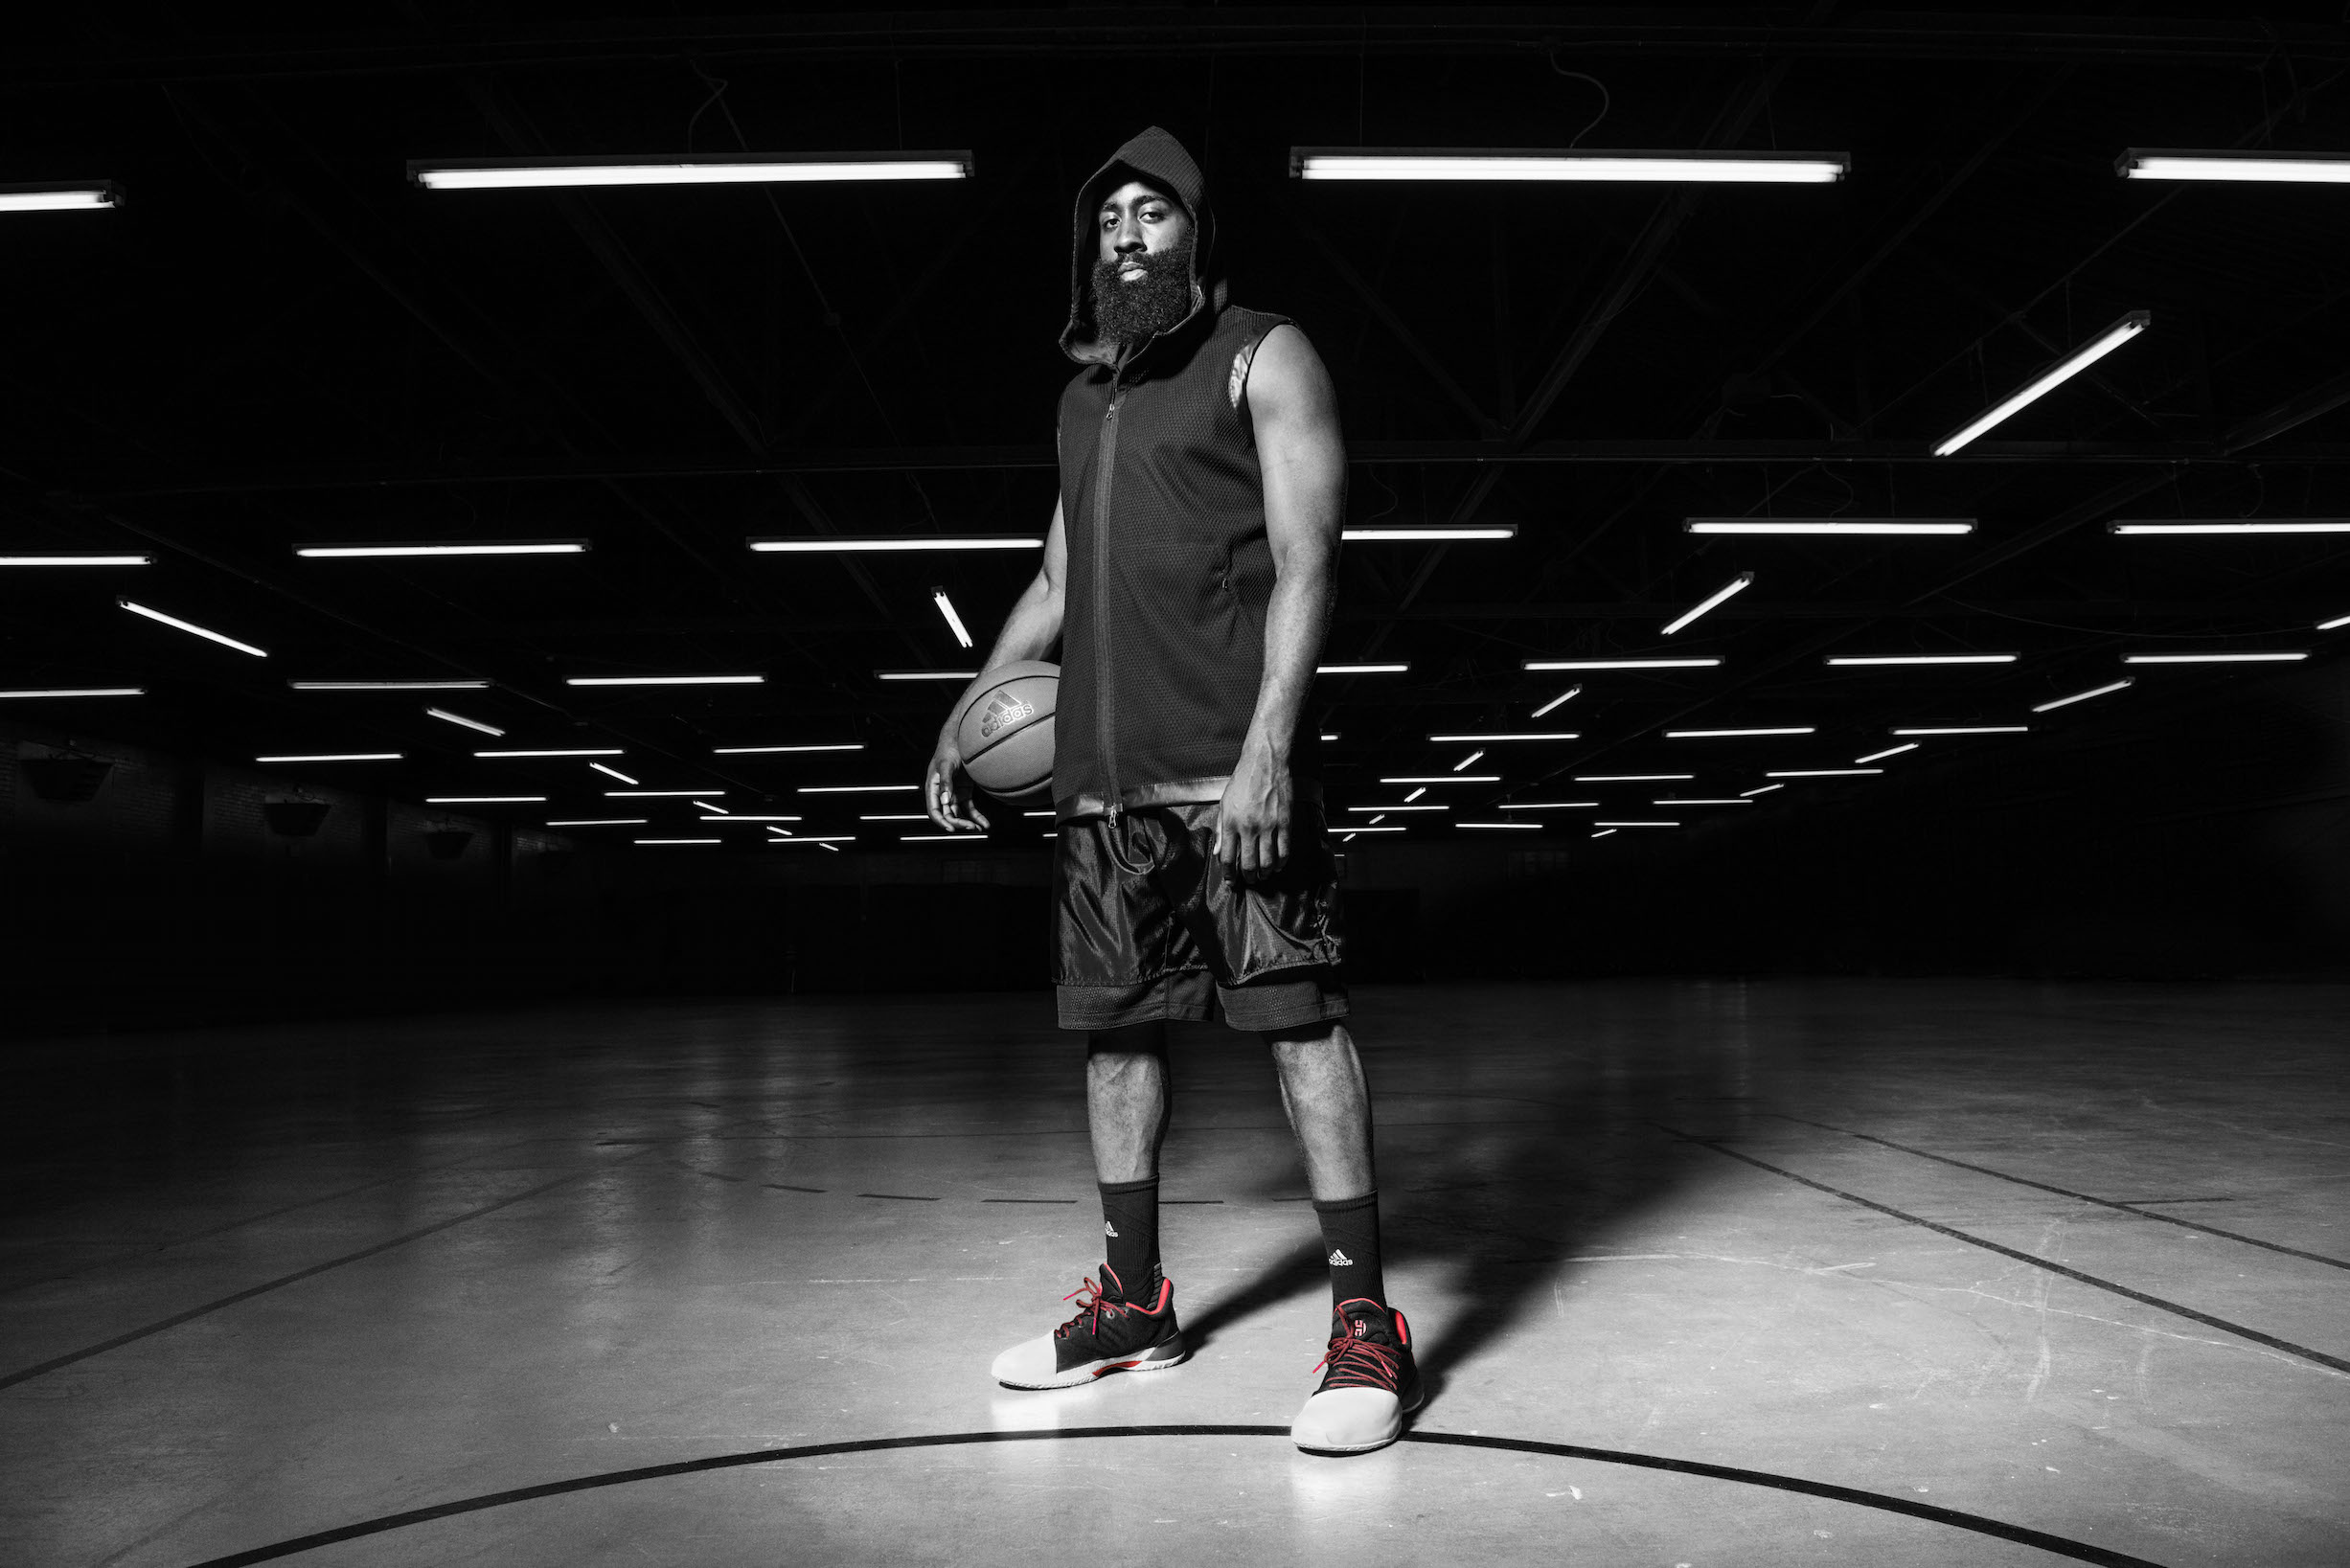 James Harden and adidas wake the game up with Harden vol. 1